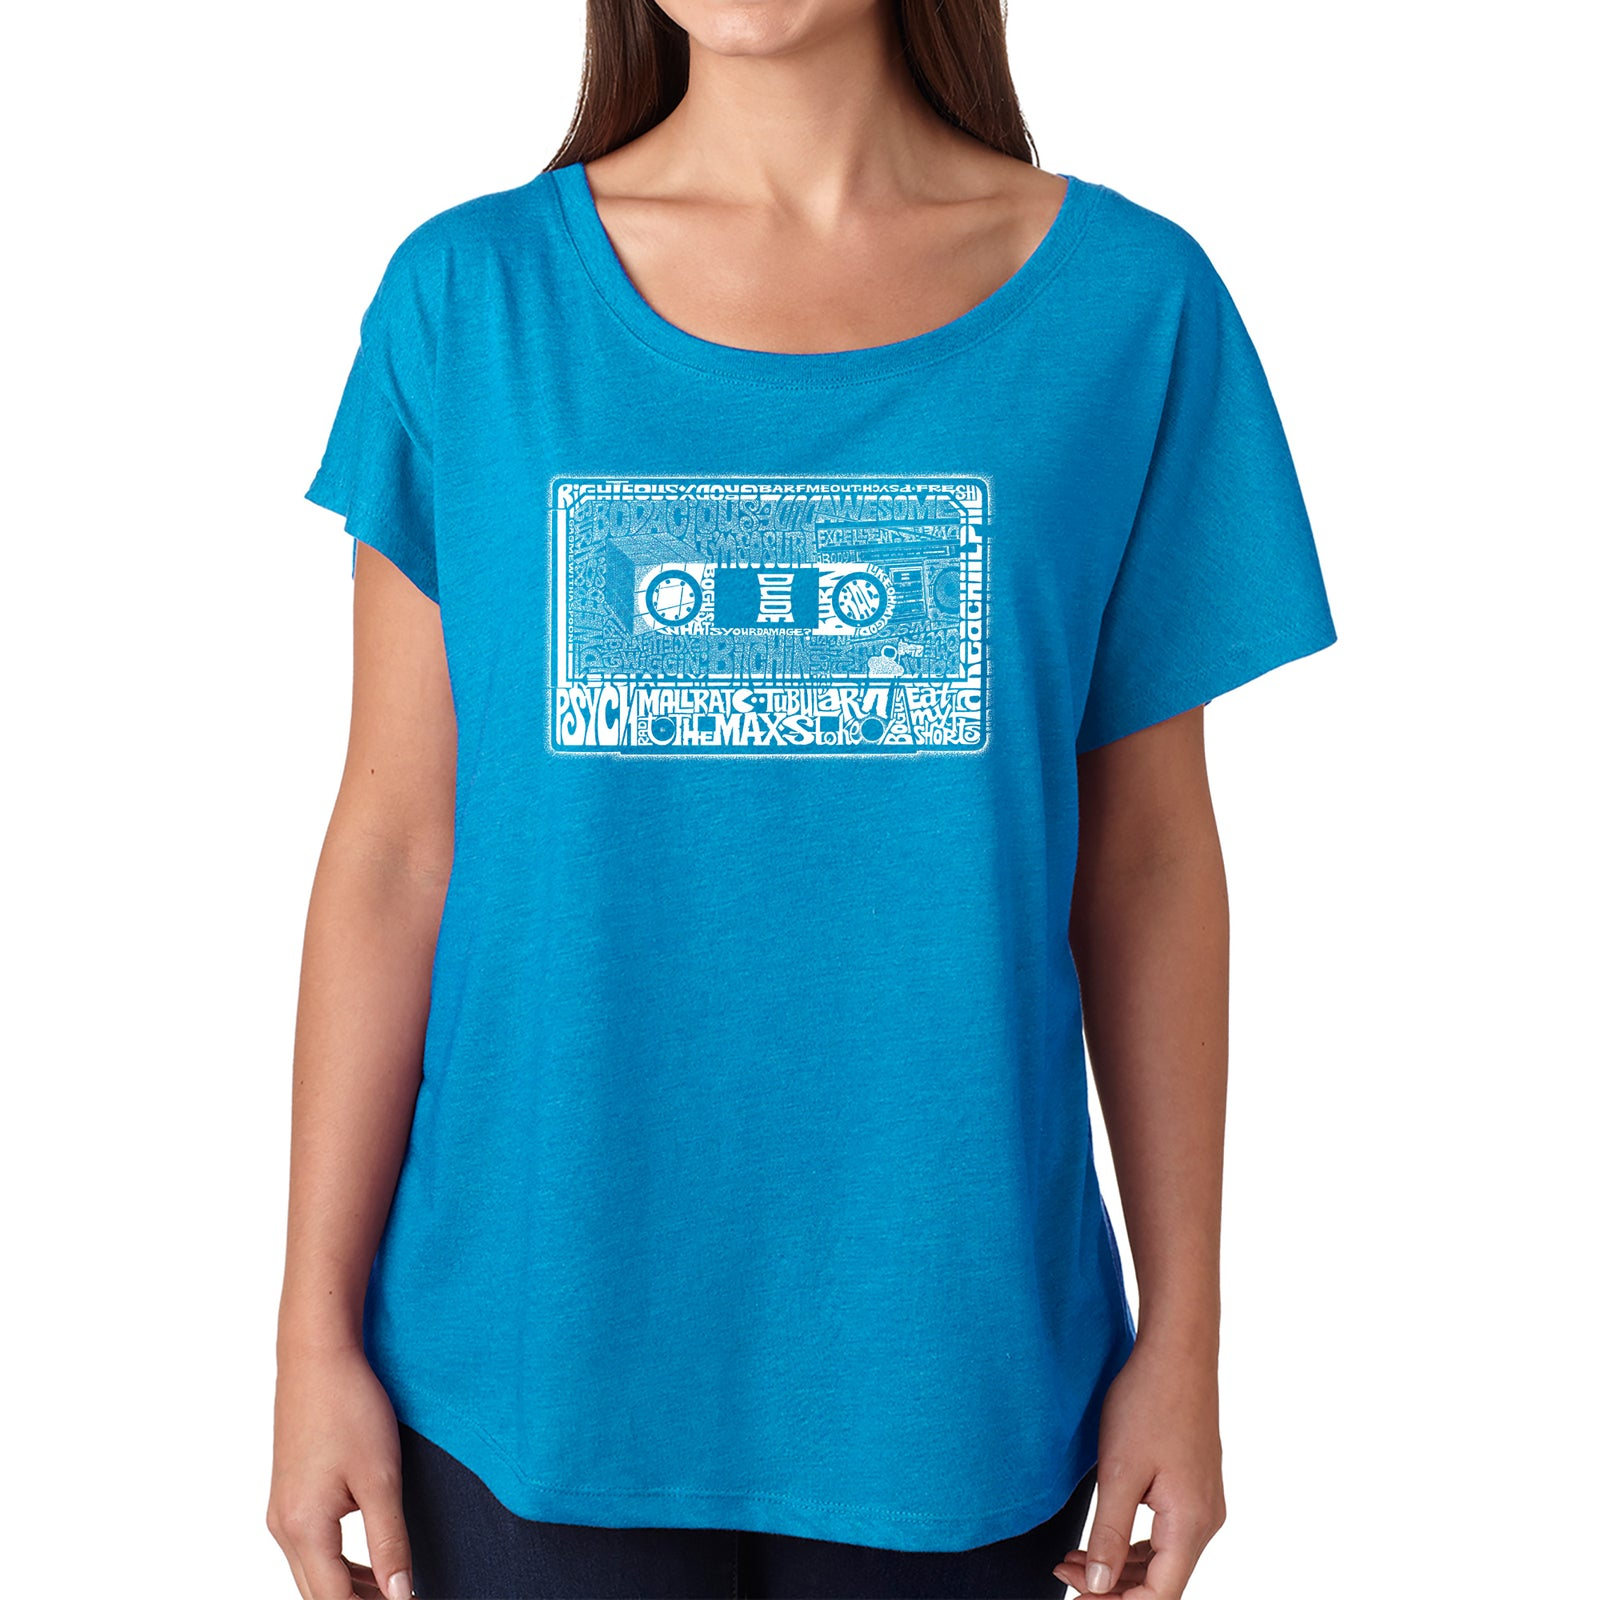 Women's Loose Fit Dolman Cut Word Art Shirt - The 80's